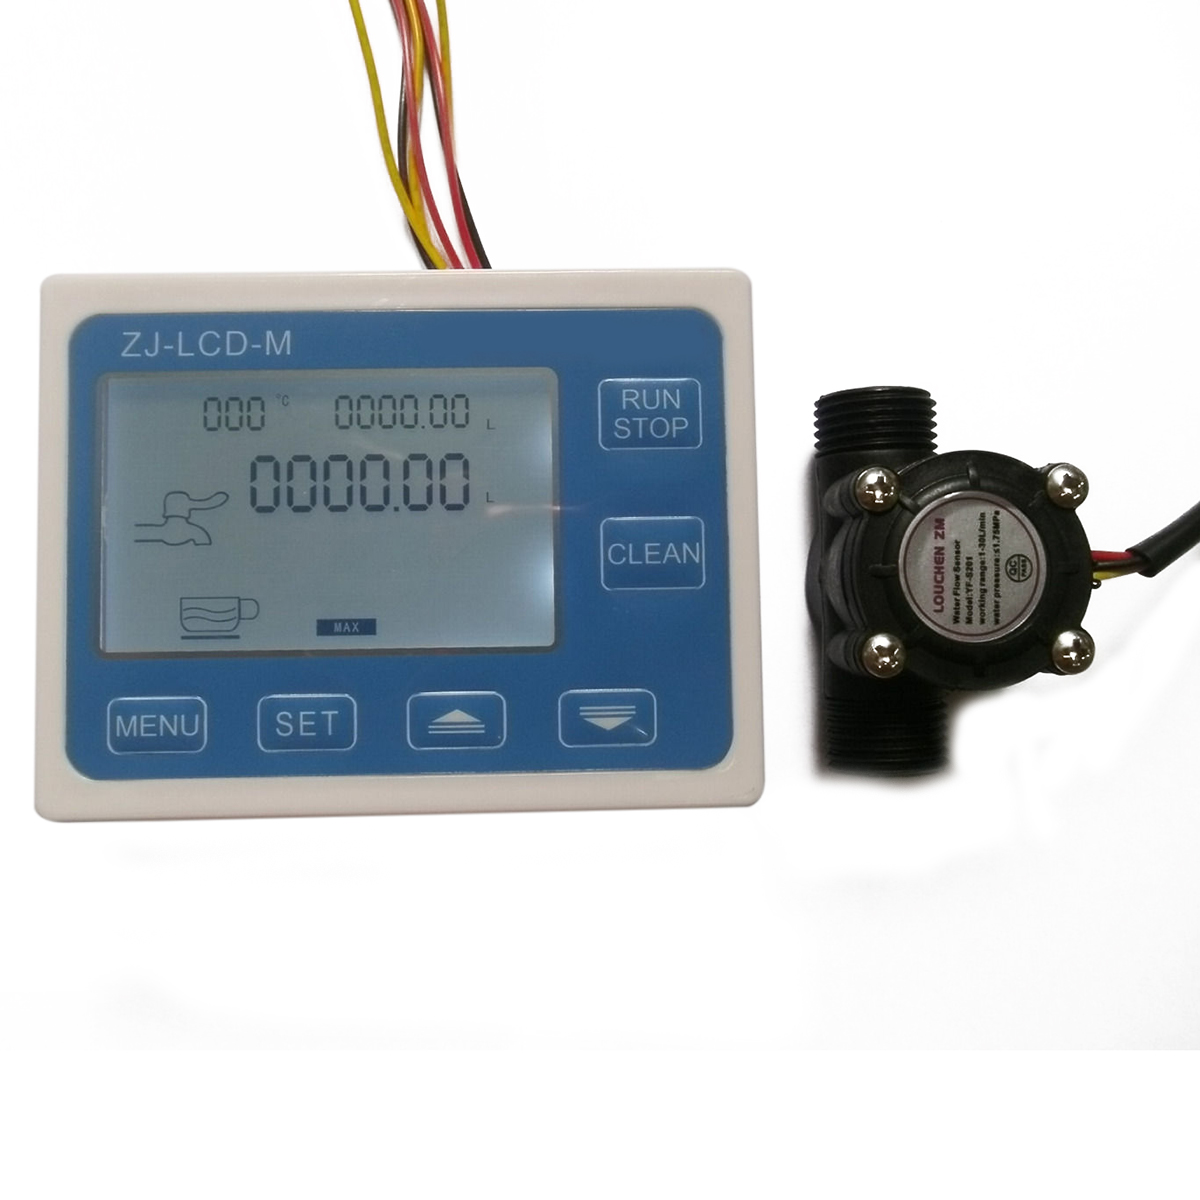 купить G1/2 Hall effect Flow Water Sensor Meter Mayitr Flowmeter + Blue Digital LCD Display Controller For Solenoid Valve дешево